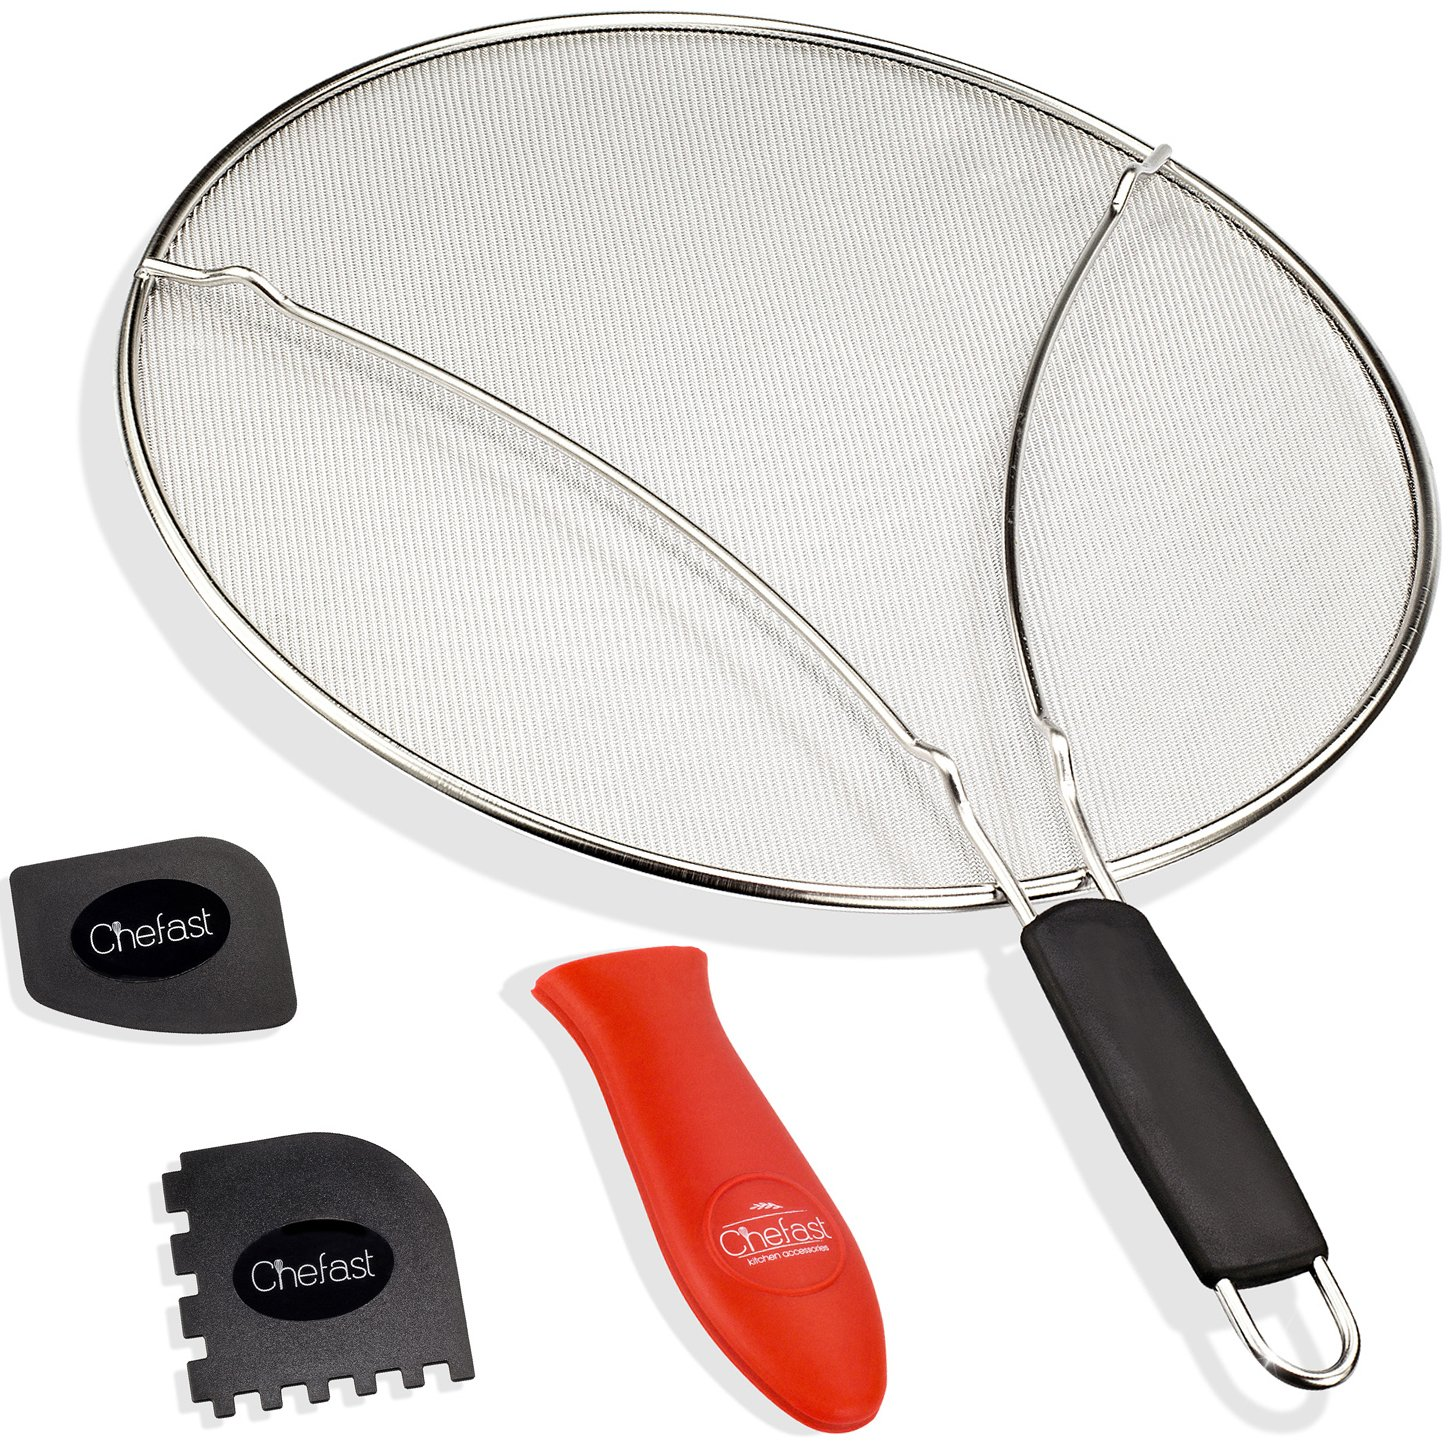 Chefast Splatter Screen Set: 13-Inch Stainless Steel Grease Guard, Grill and Cooking Pan Scrapers, and Silicone Hot Handle Holder - Oil Shield for Frying Pans and Skillets